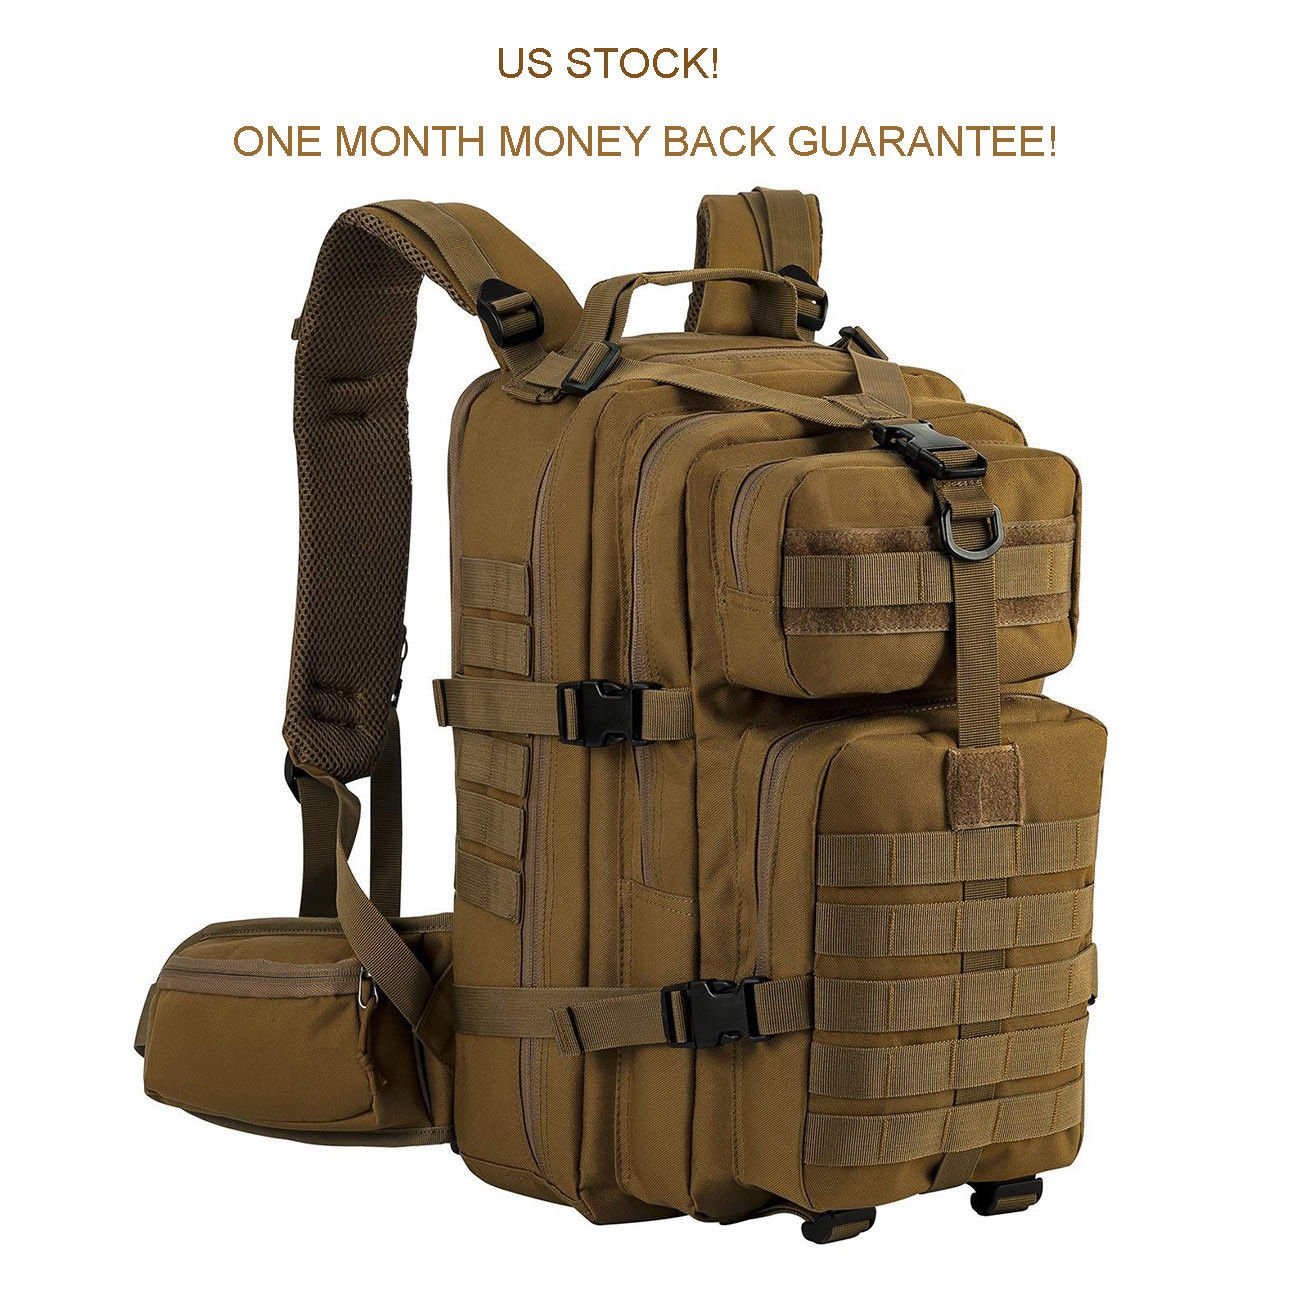 Tactical Backpack Assault Hunting Survival Military Army Hiking Bug Ou...